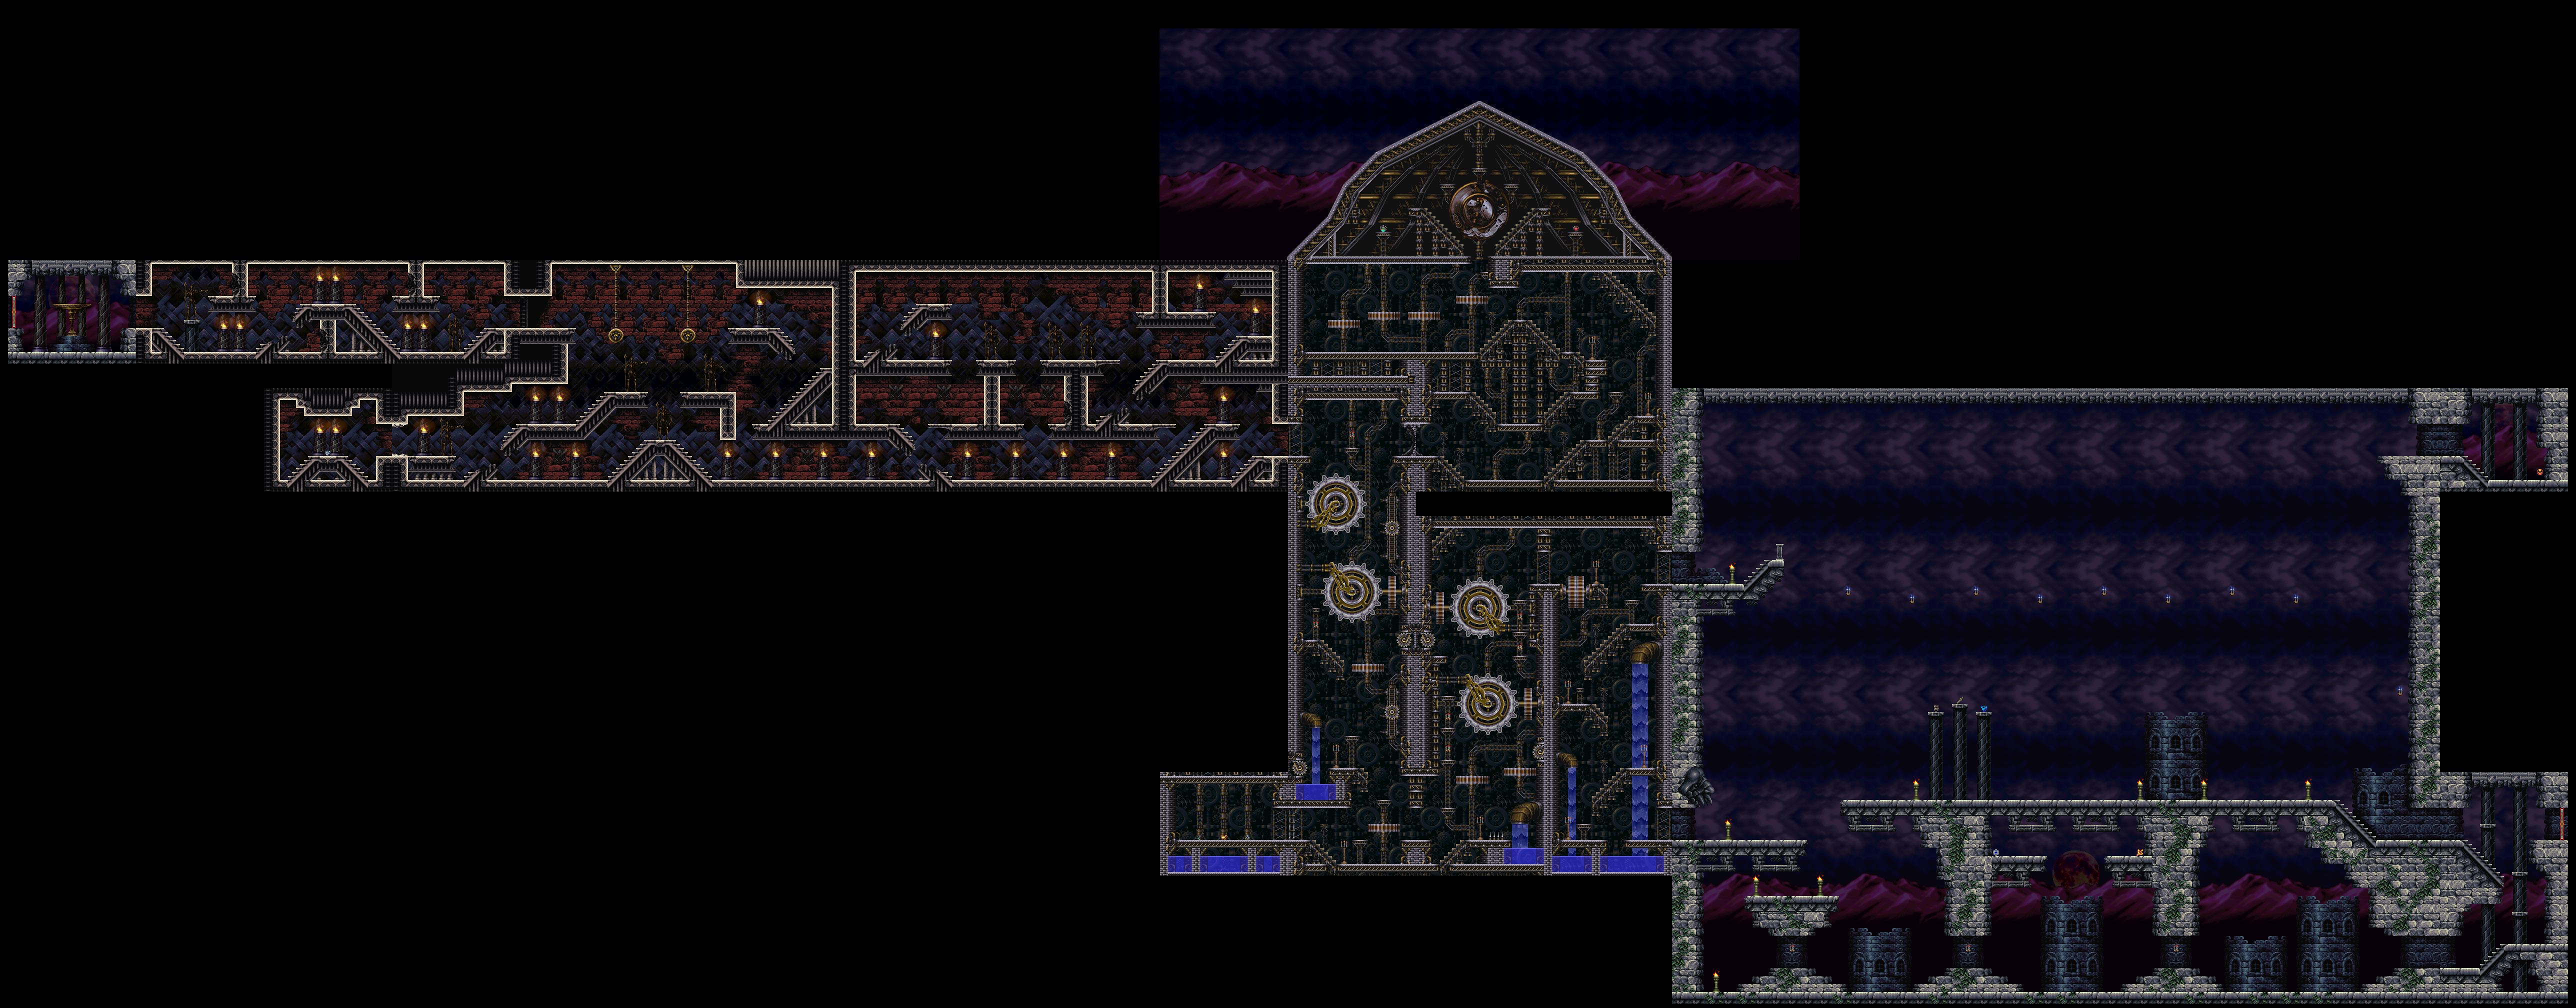 Castlevania World Map.Symphony Of The Night Maps